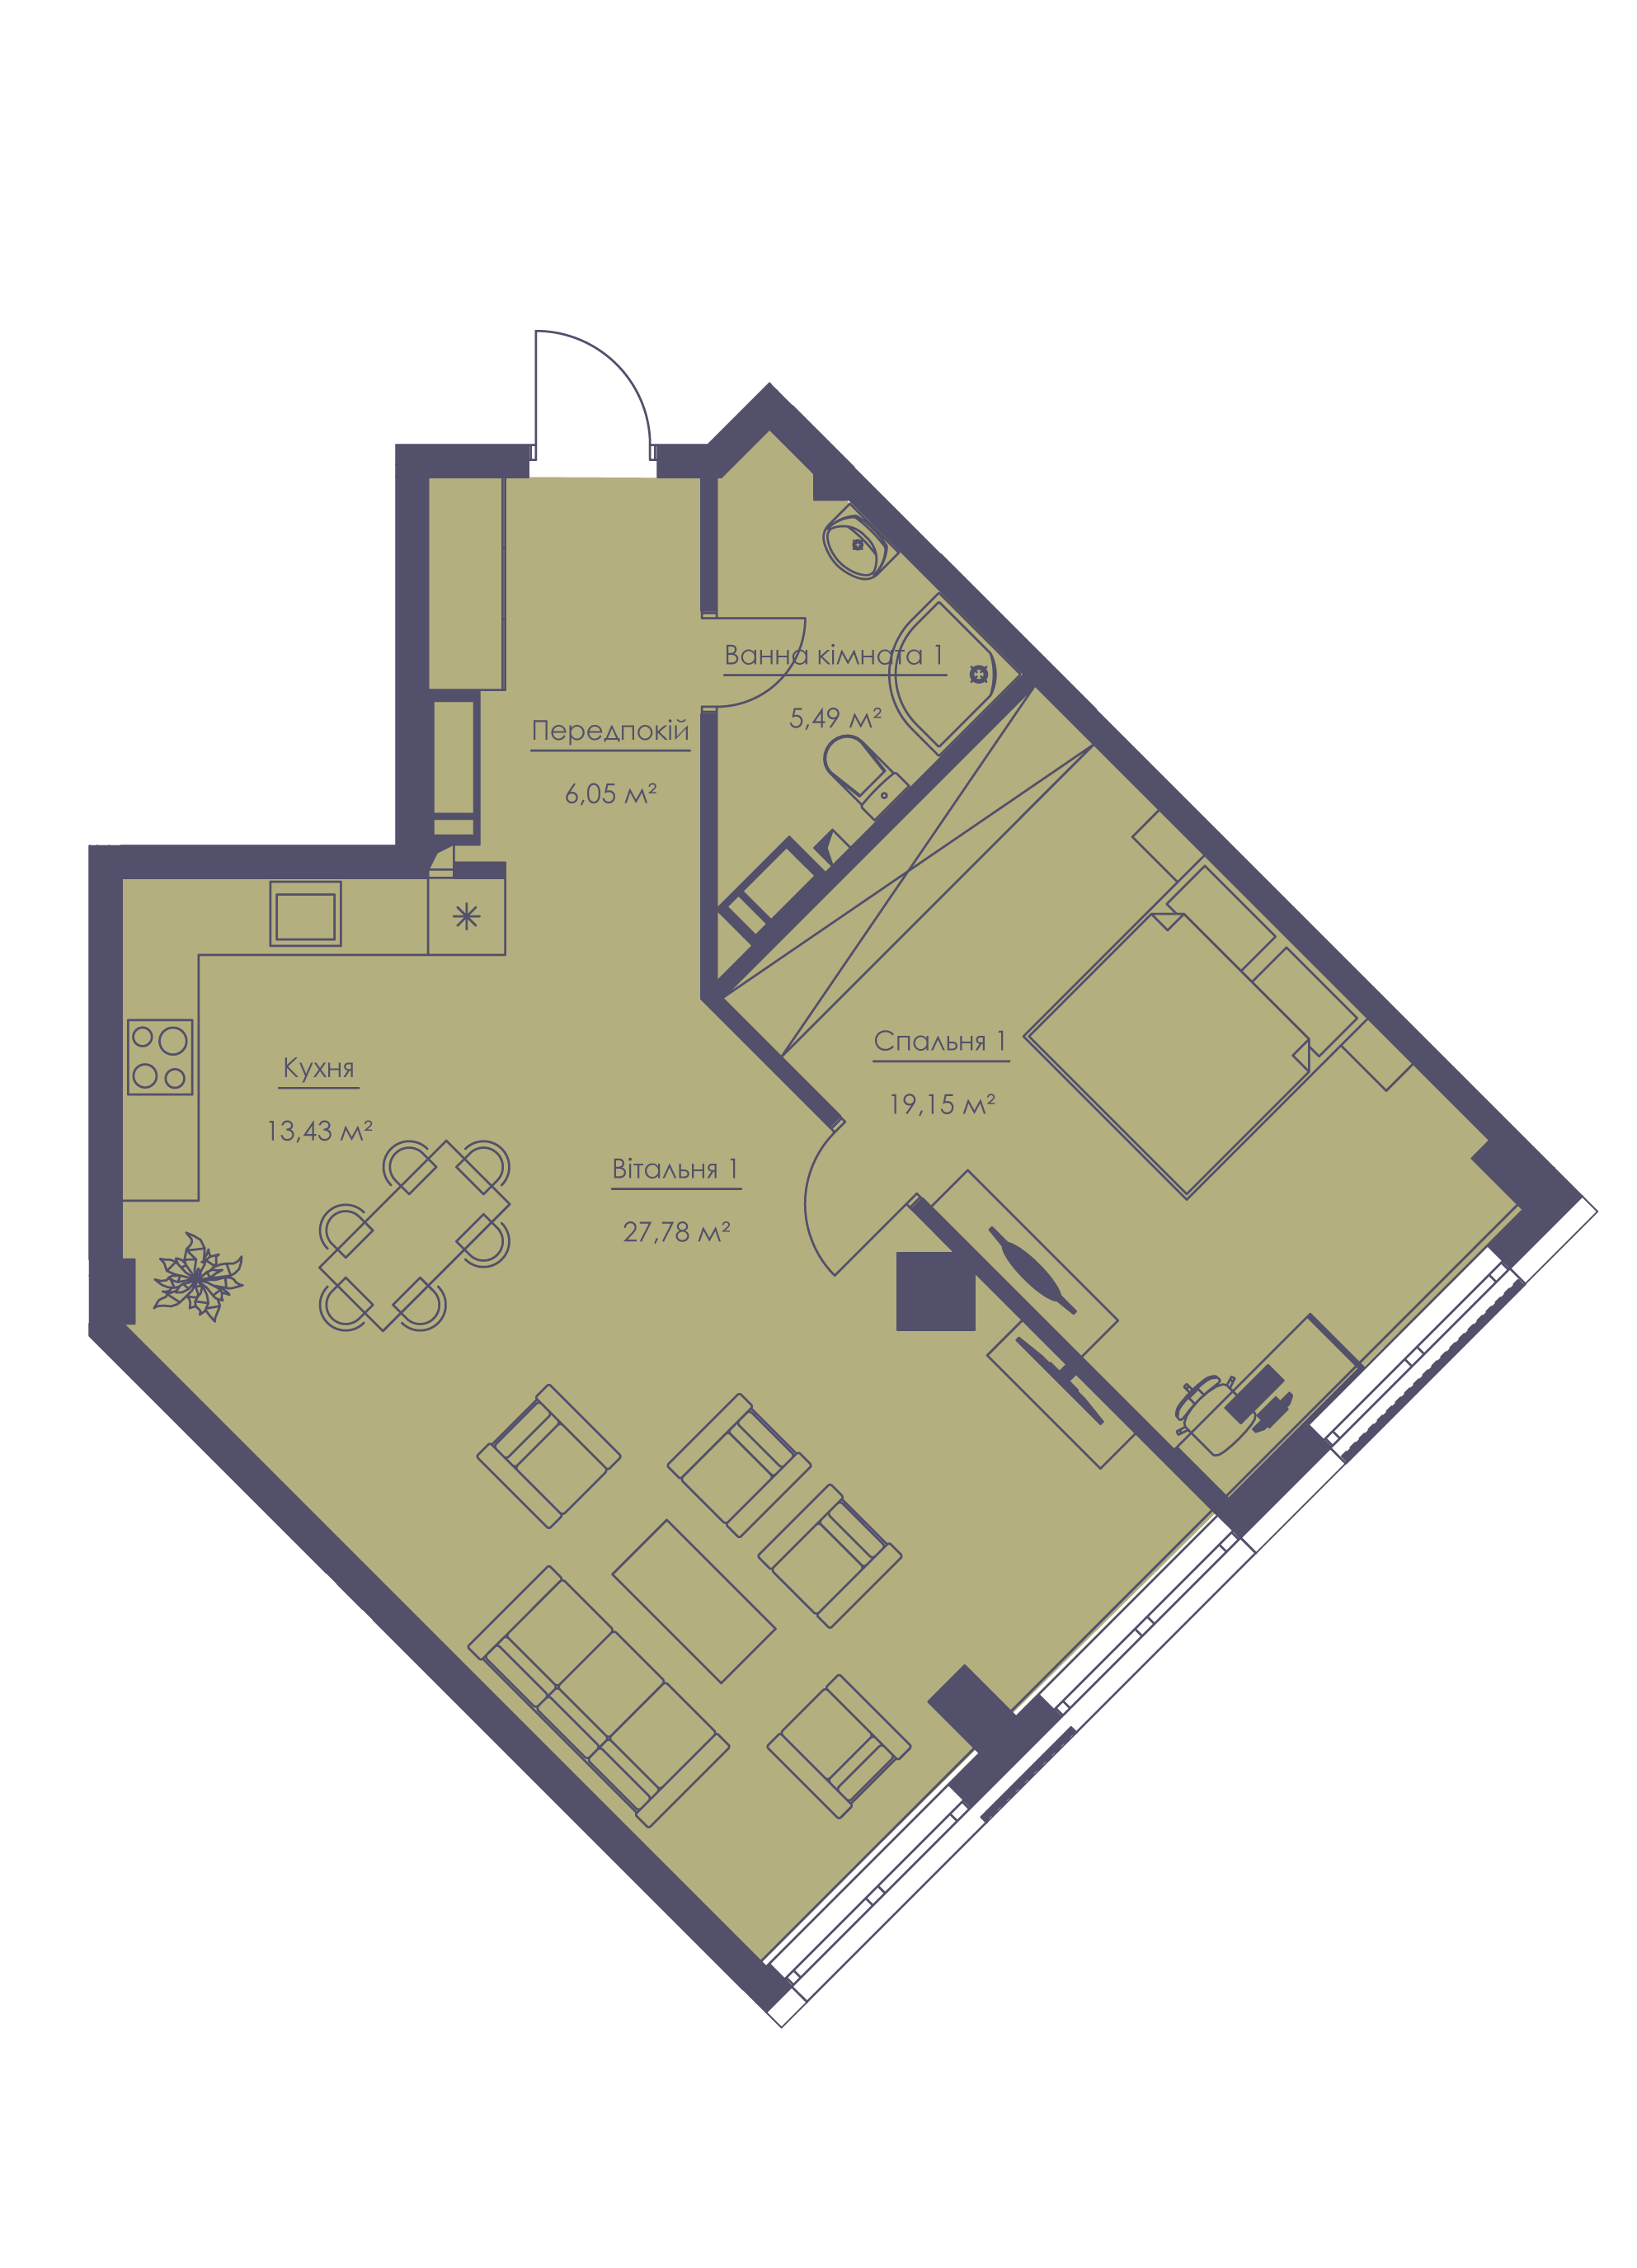 Apartment layout KV_43_2a_1_1_1-1